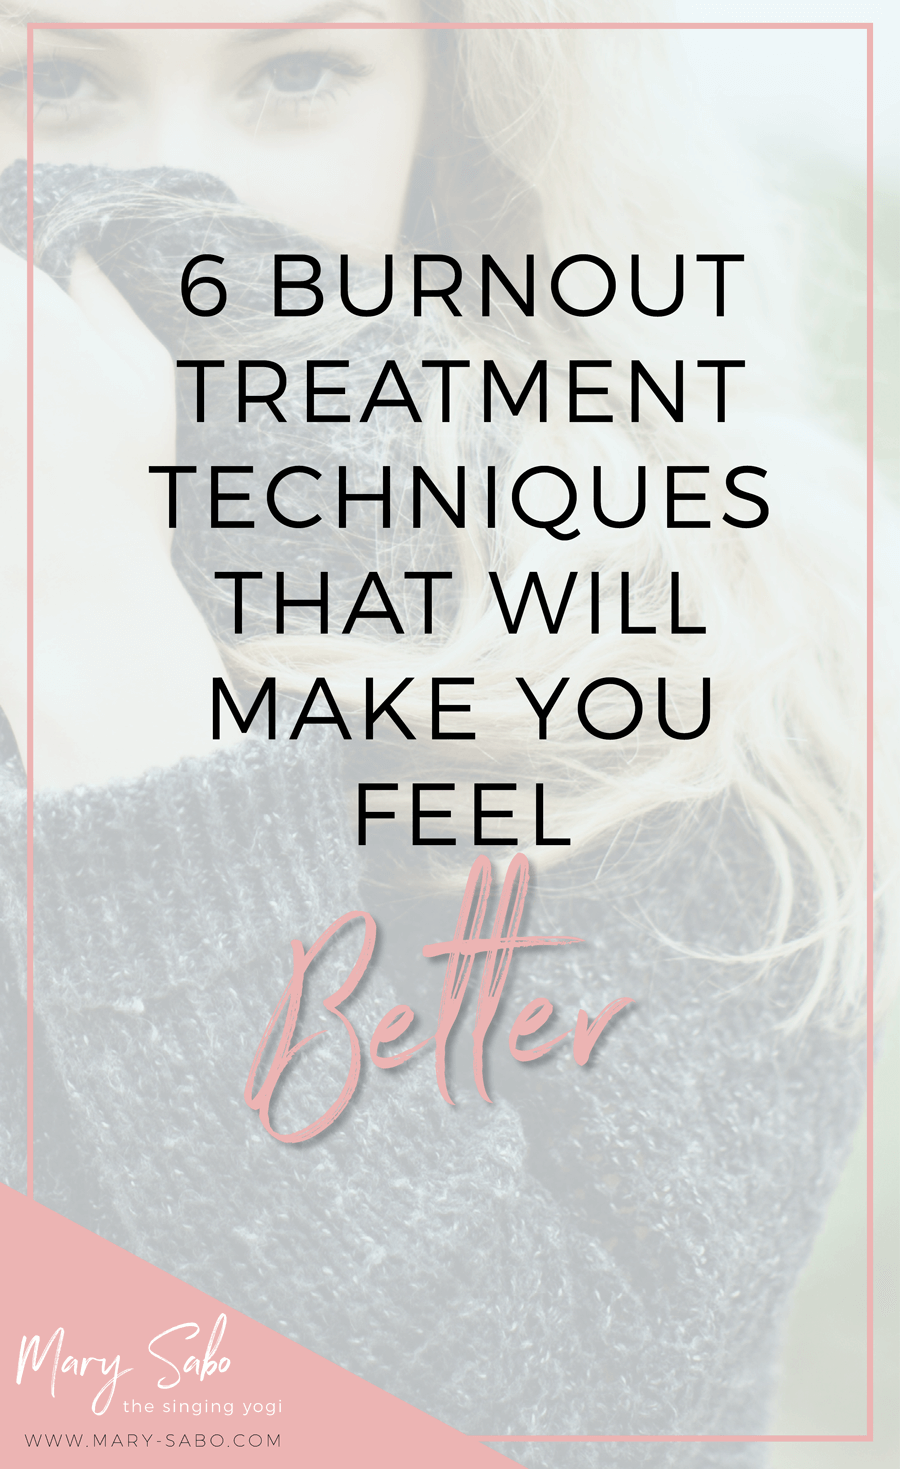 6 Burnout Treatment Techniques That Will Make You Feel Better | Mary Sabo Yoga Instructor